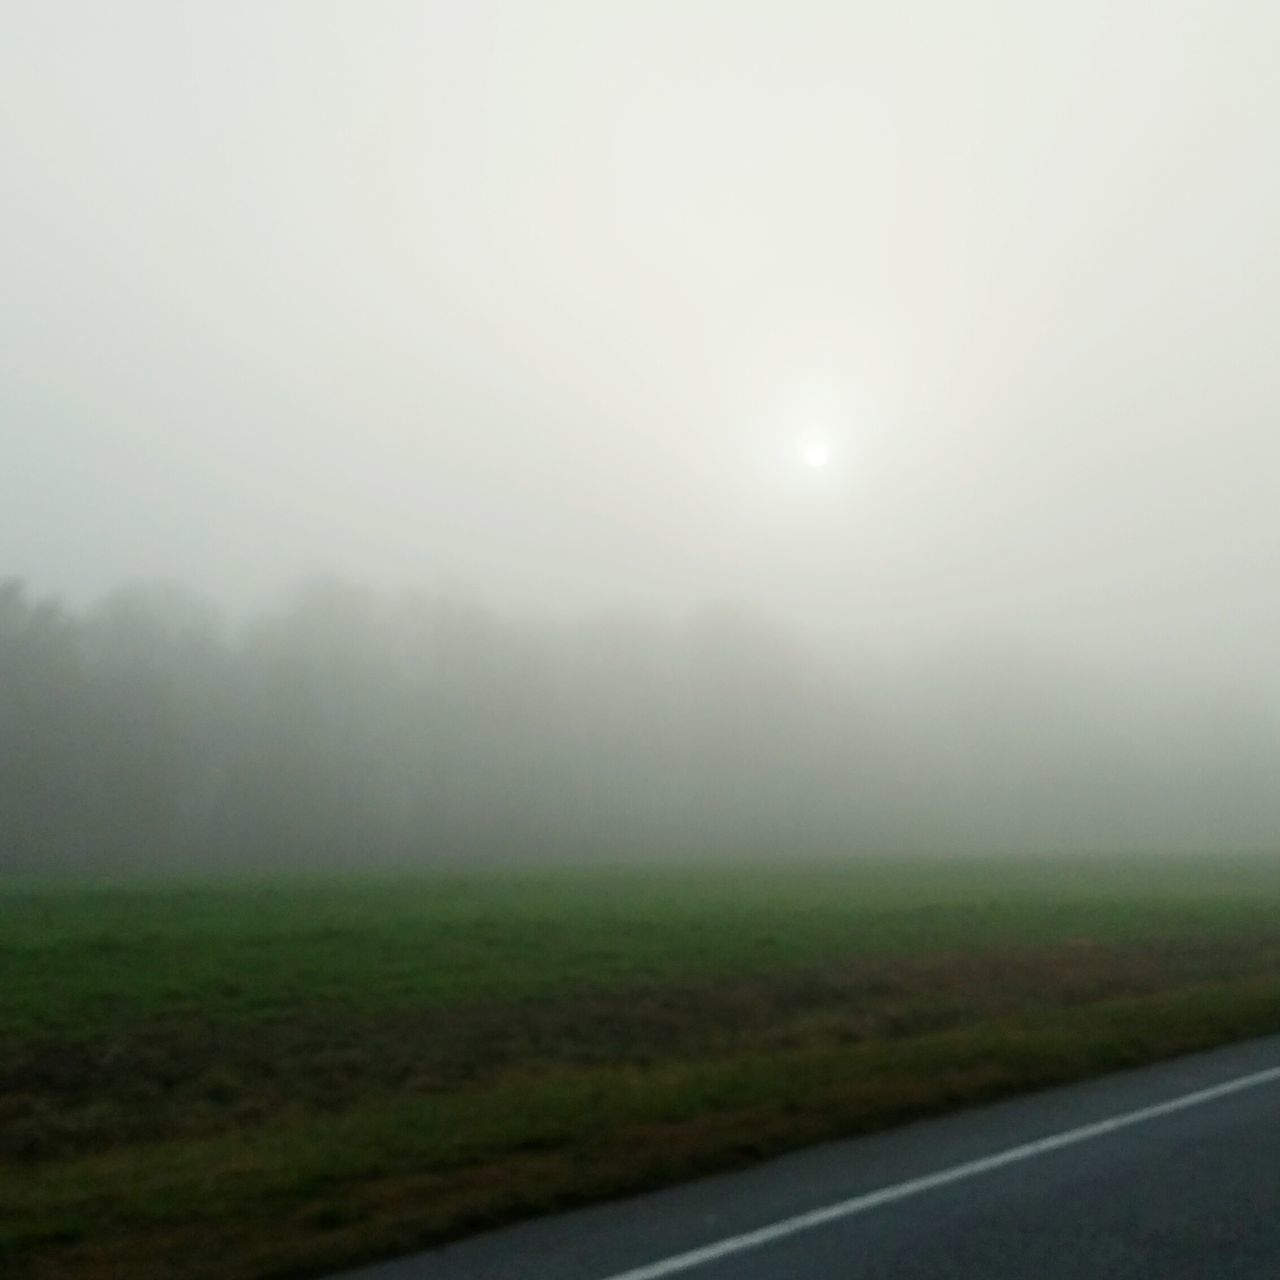 Foggy Field and Sun Fog Foggy Field Sun Driving NC Country Blur Green Road Dreary Weather Landscape Nature Tranquil Scene No People Field Scenics Tranquility Outdoors Grass Sky Minimalism Beauty In Nature